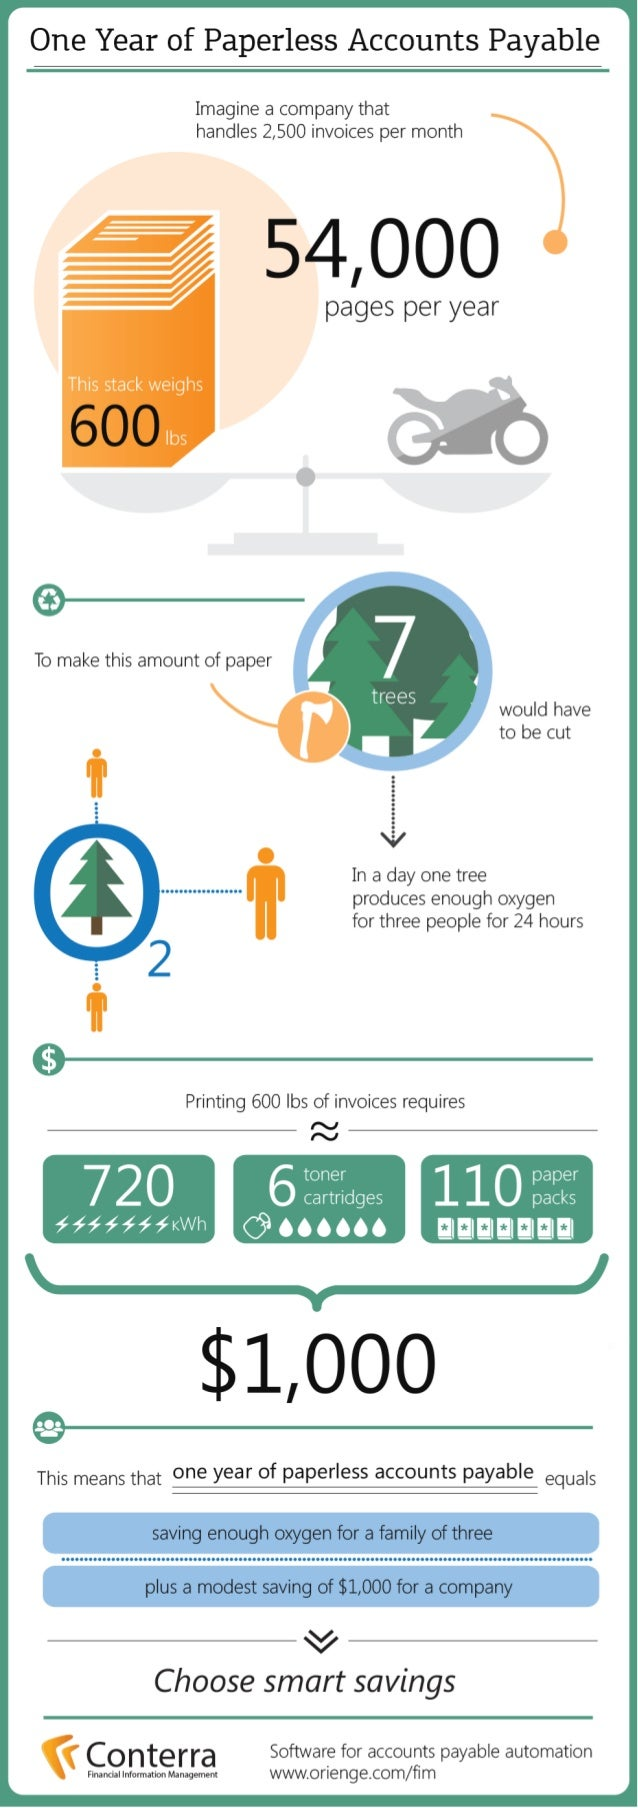 One Year Of Paperless Accounts Payable